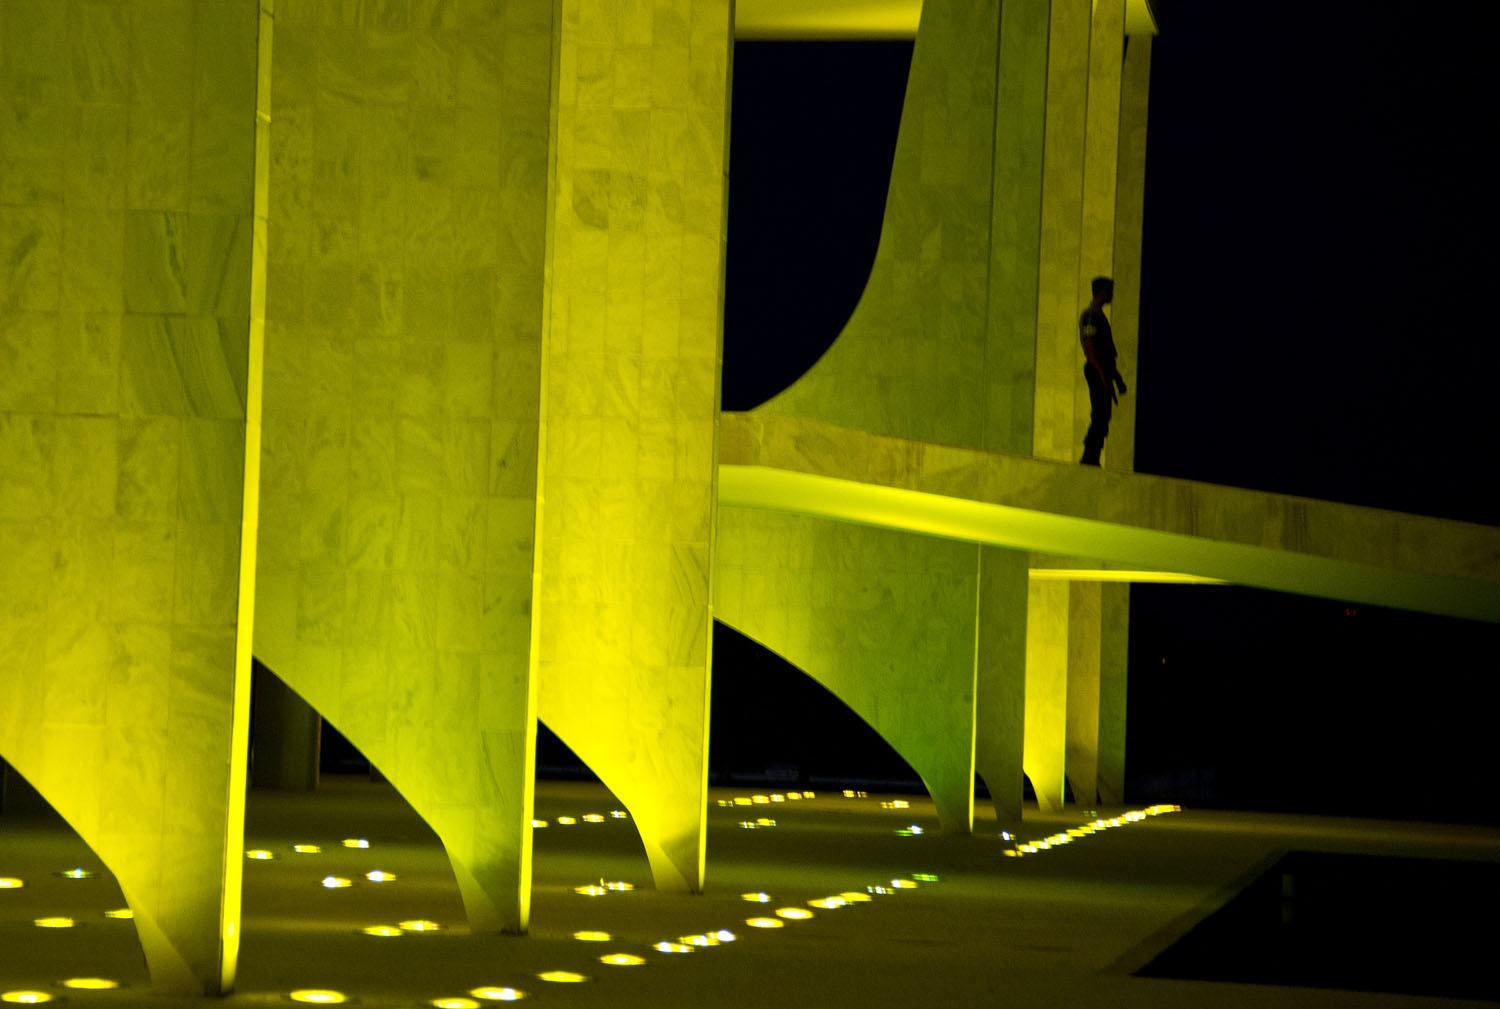 A guard stands at the Planalto palace in Brasilia on May 11, 2016.